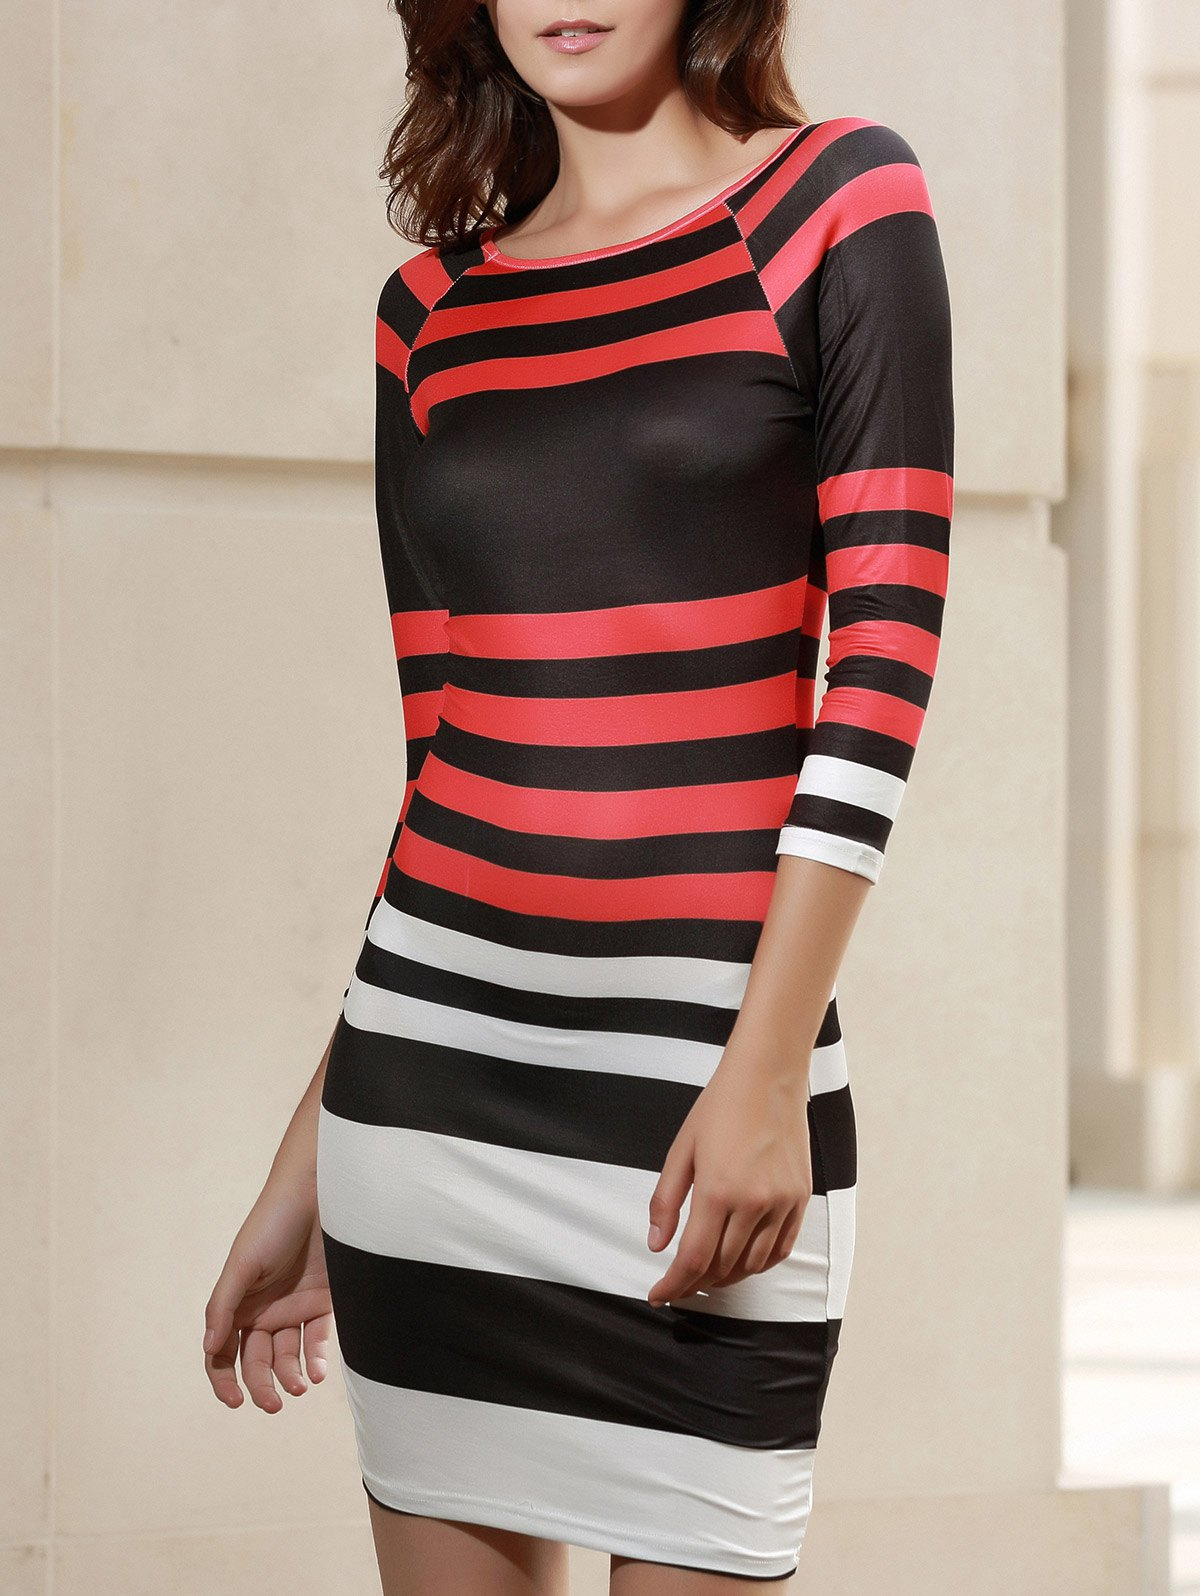 Preppy Style Boat Neck 3/4 Sleeve Striped Bodycon Mini Dress For Women stylish boat neck cap sleeve striped dress for women